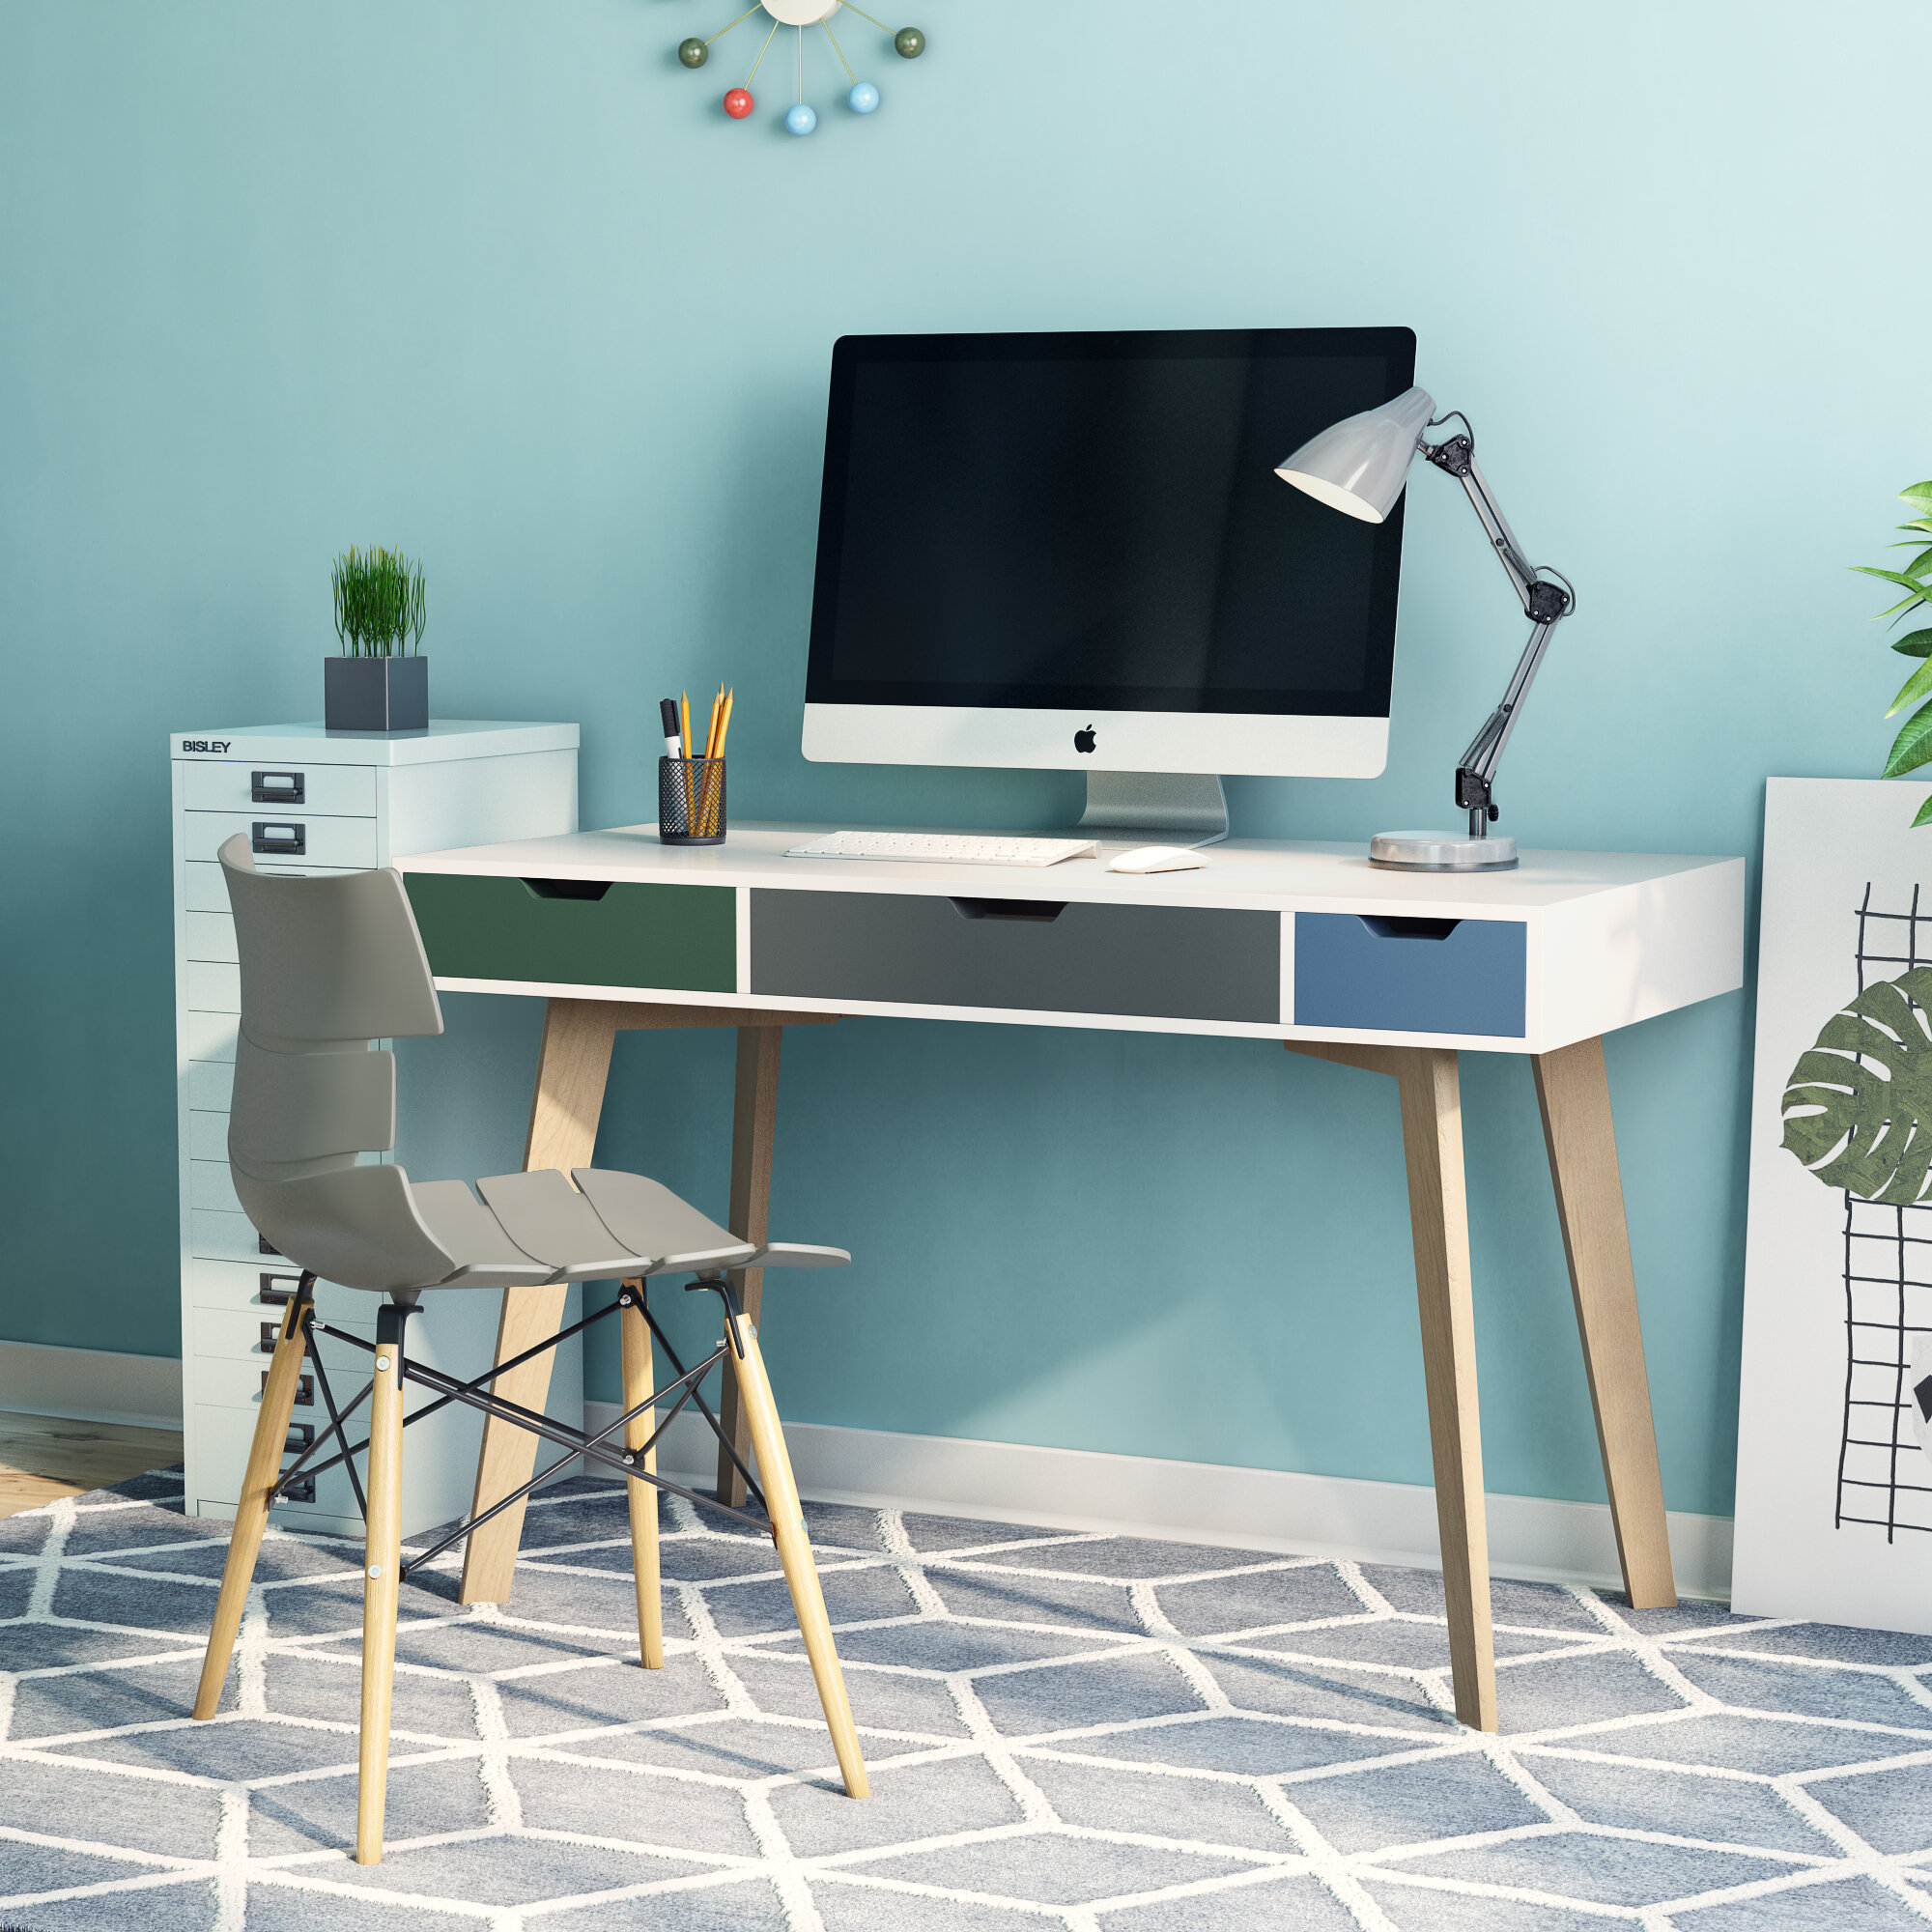 fjorde rde desk furniture pdp teal reviews leknes standing fj co uk wayfair